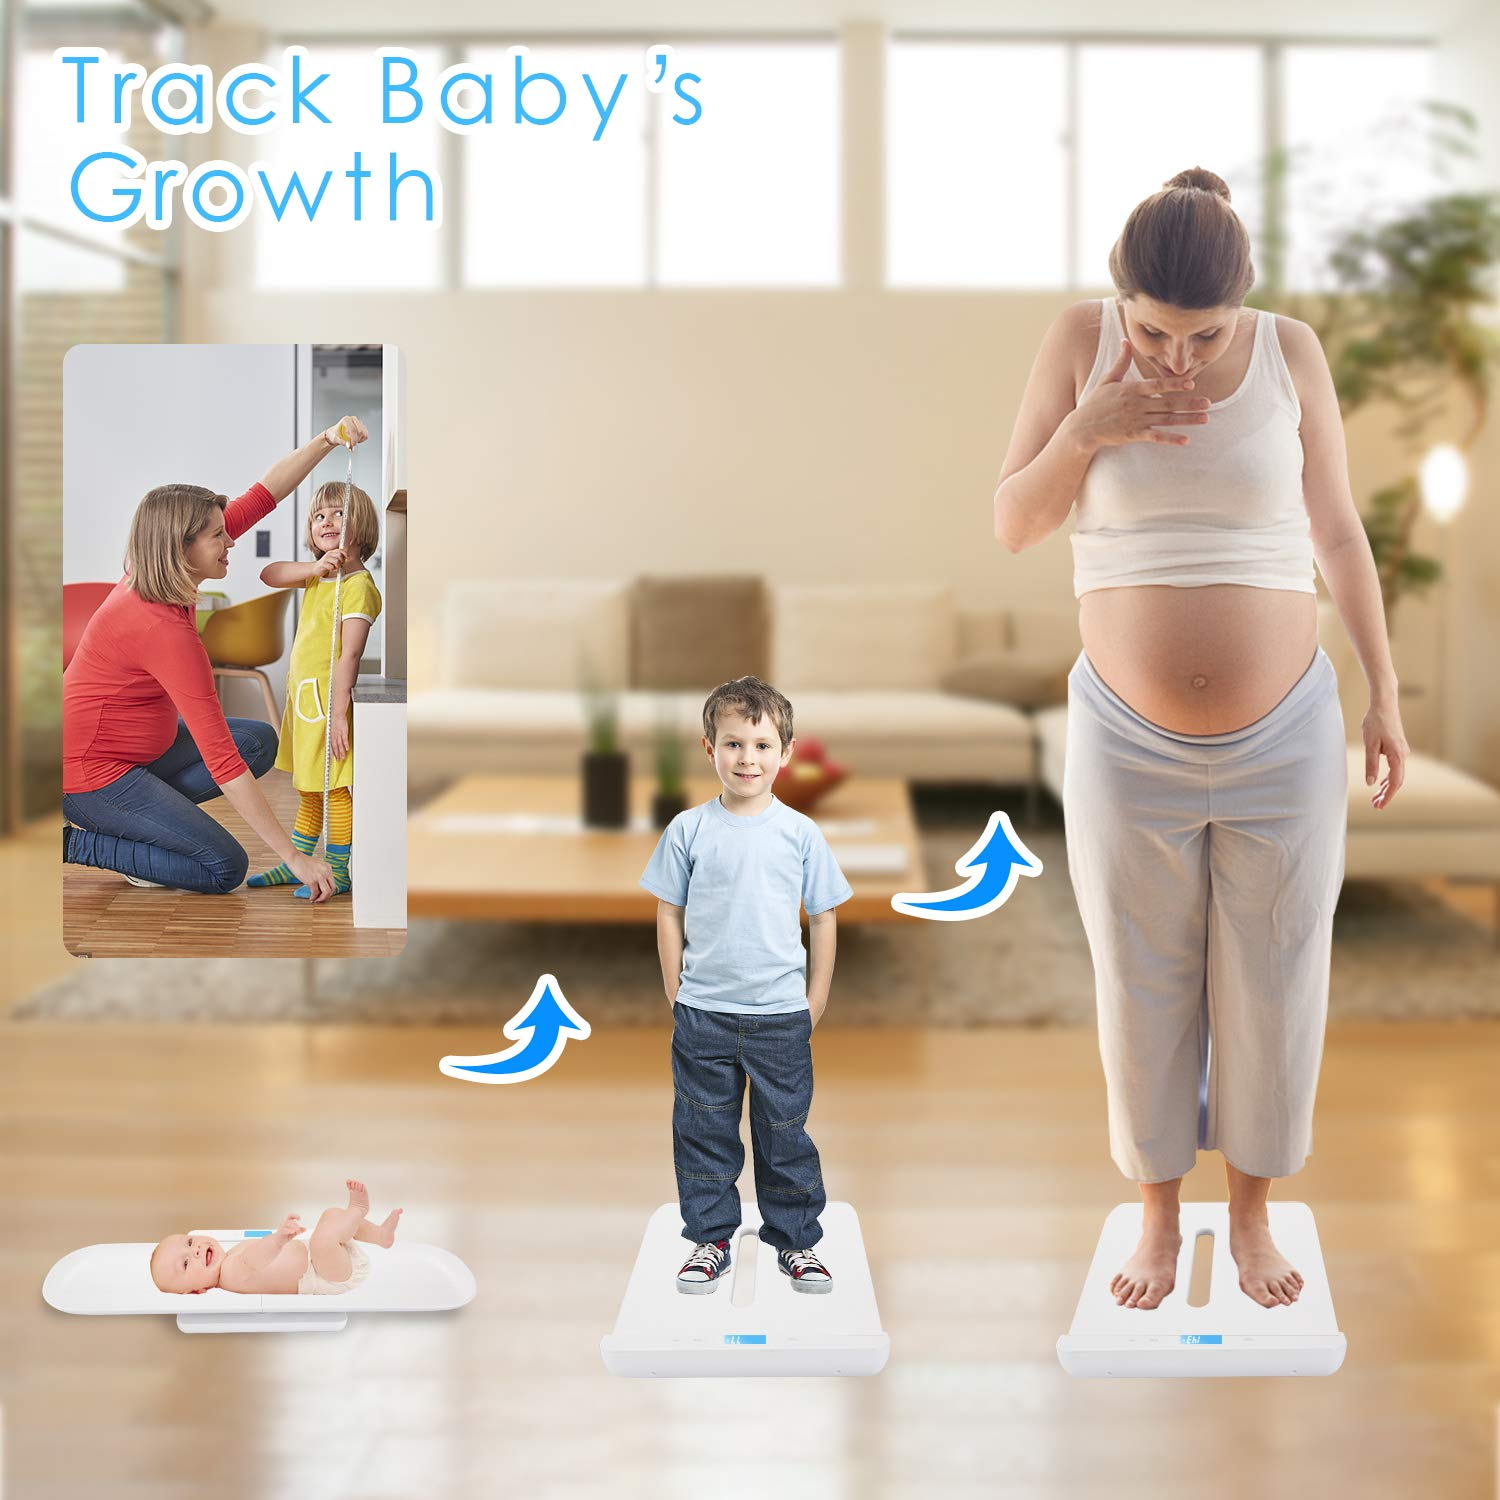 BYKAZATY Pet Scale with Tape Measure, Multi-Function Baby Scale, Infant Scale Digital Weight with Height Tray(Max: 70cm), Measure Weight Accurately(Max: 220lb), Perfect for Toddler/Puppy/Cat/Dog/Adult by BYKAZATY (Image #4)